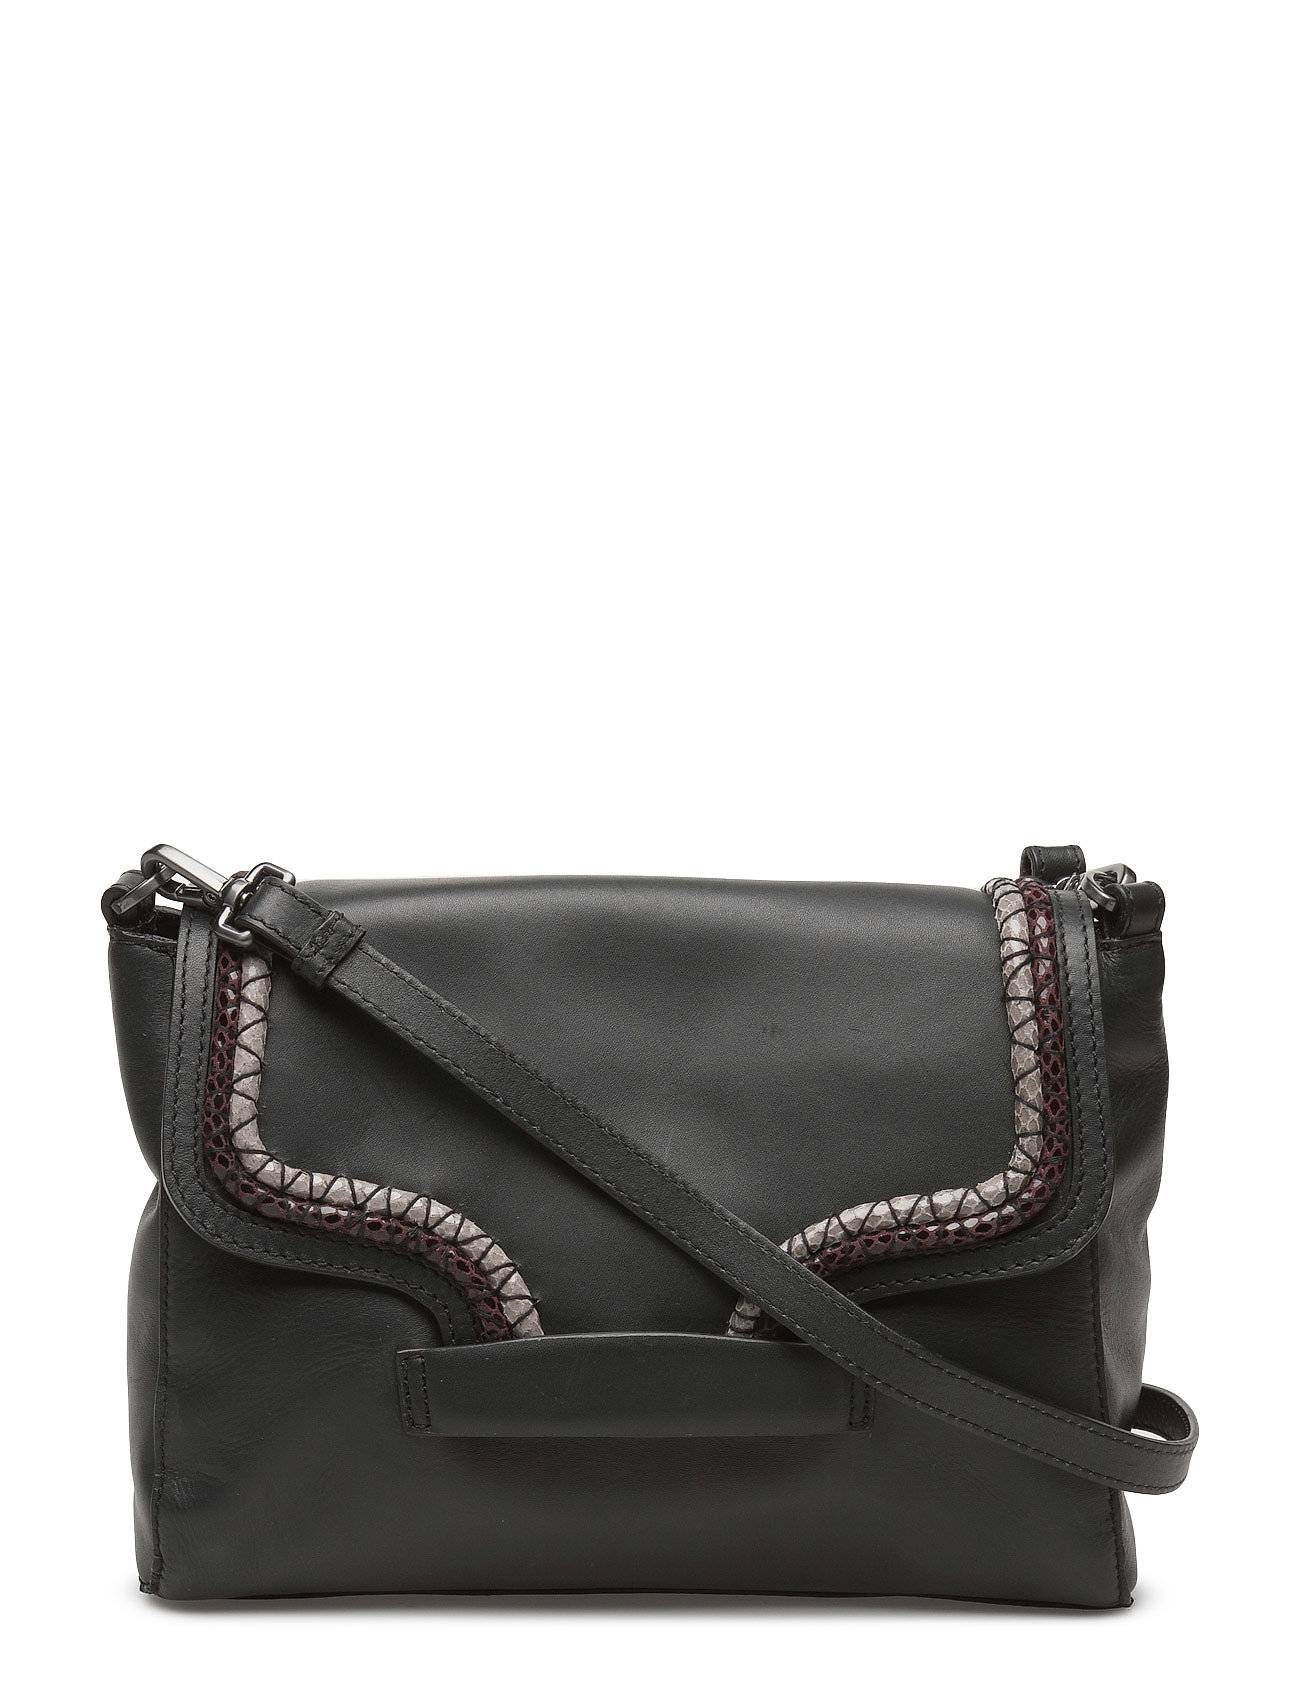 DAY et Day Frame Cross Body